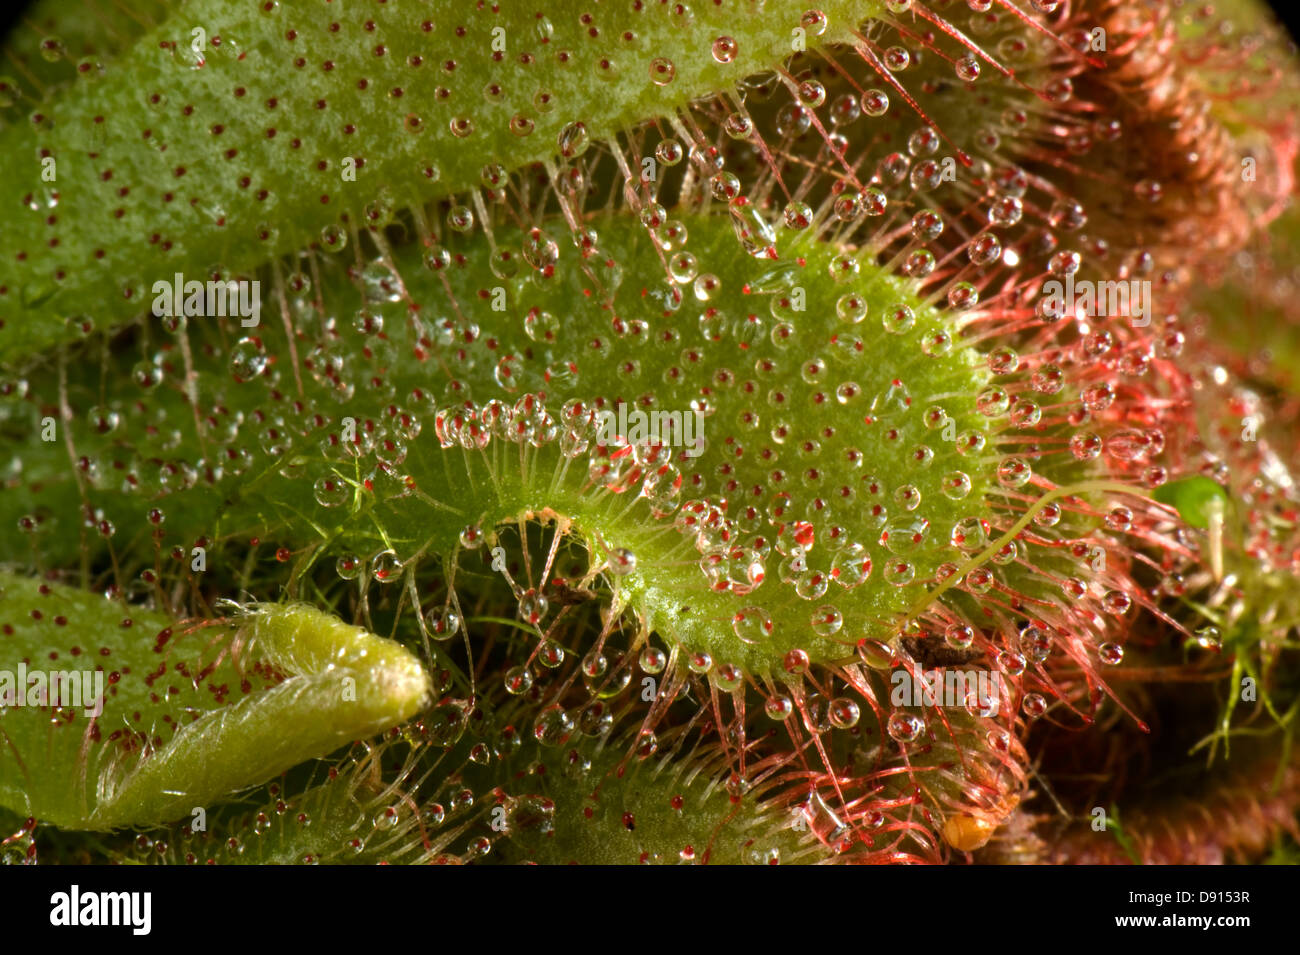 Insectivorous leaves and sticky leaf hairs of a sundew, Drosera aliciae, - Stock Image